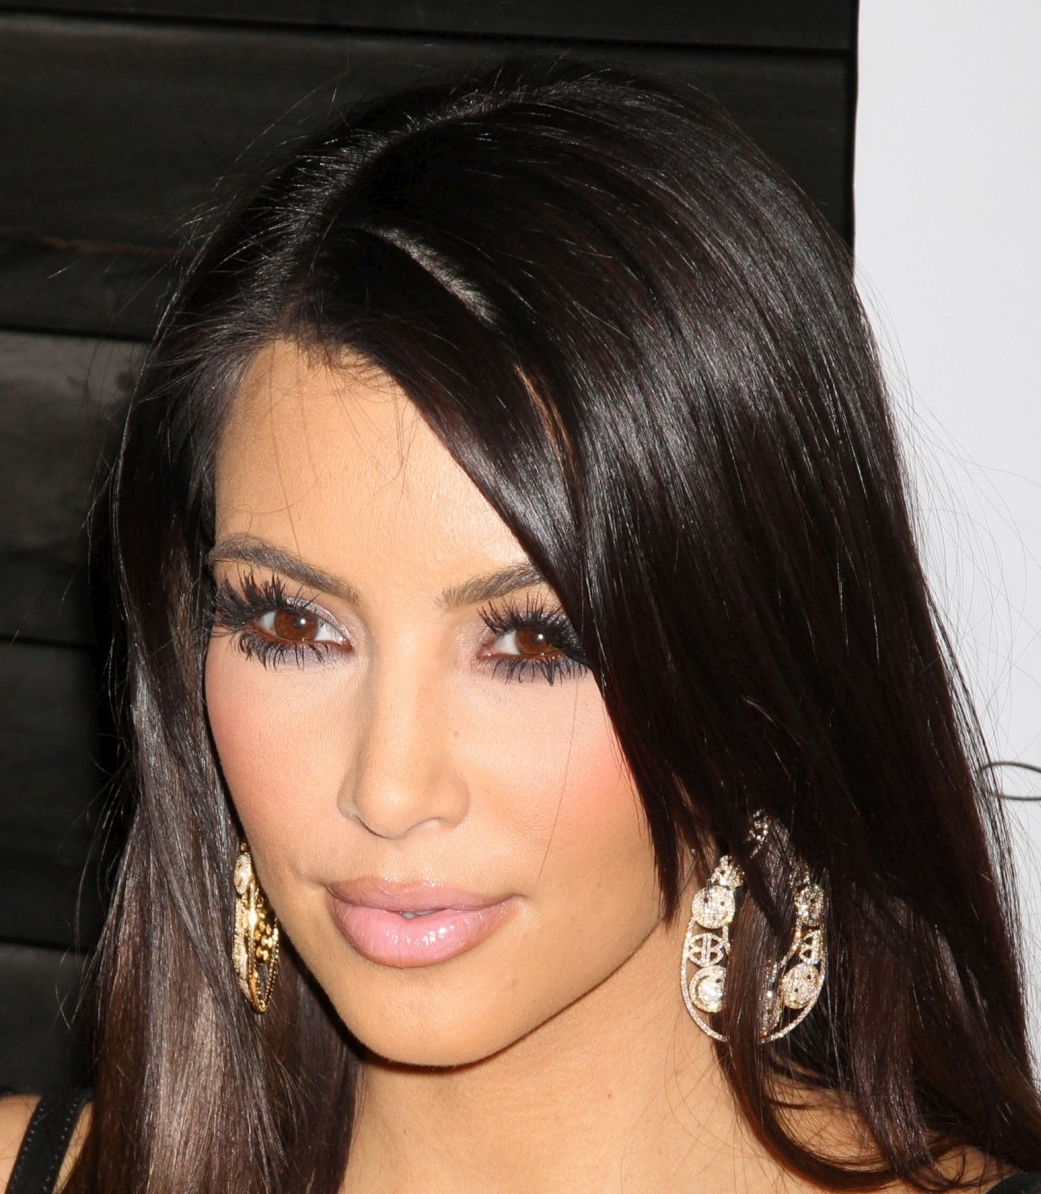 Kim-Kardashian-with-and-without-makeup.j